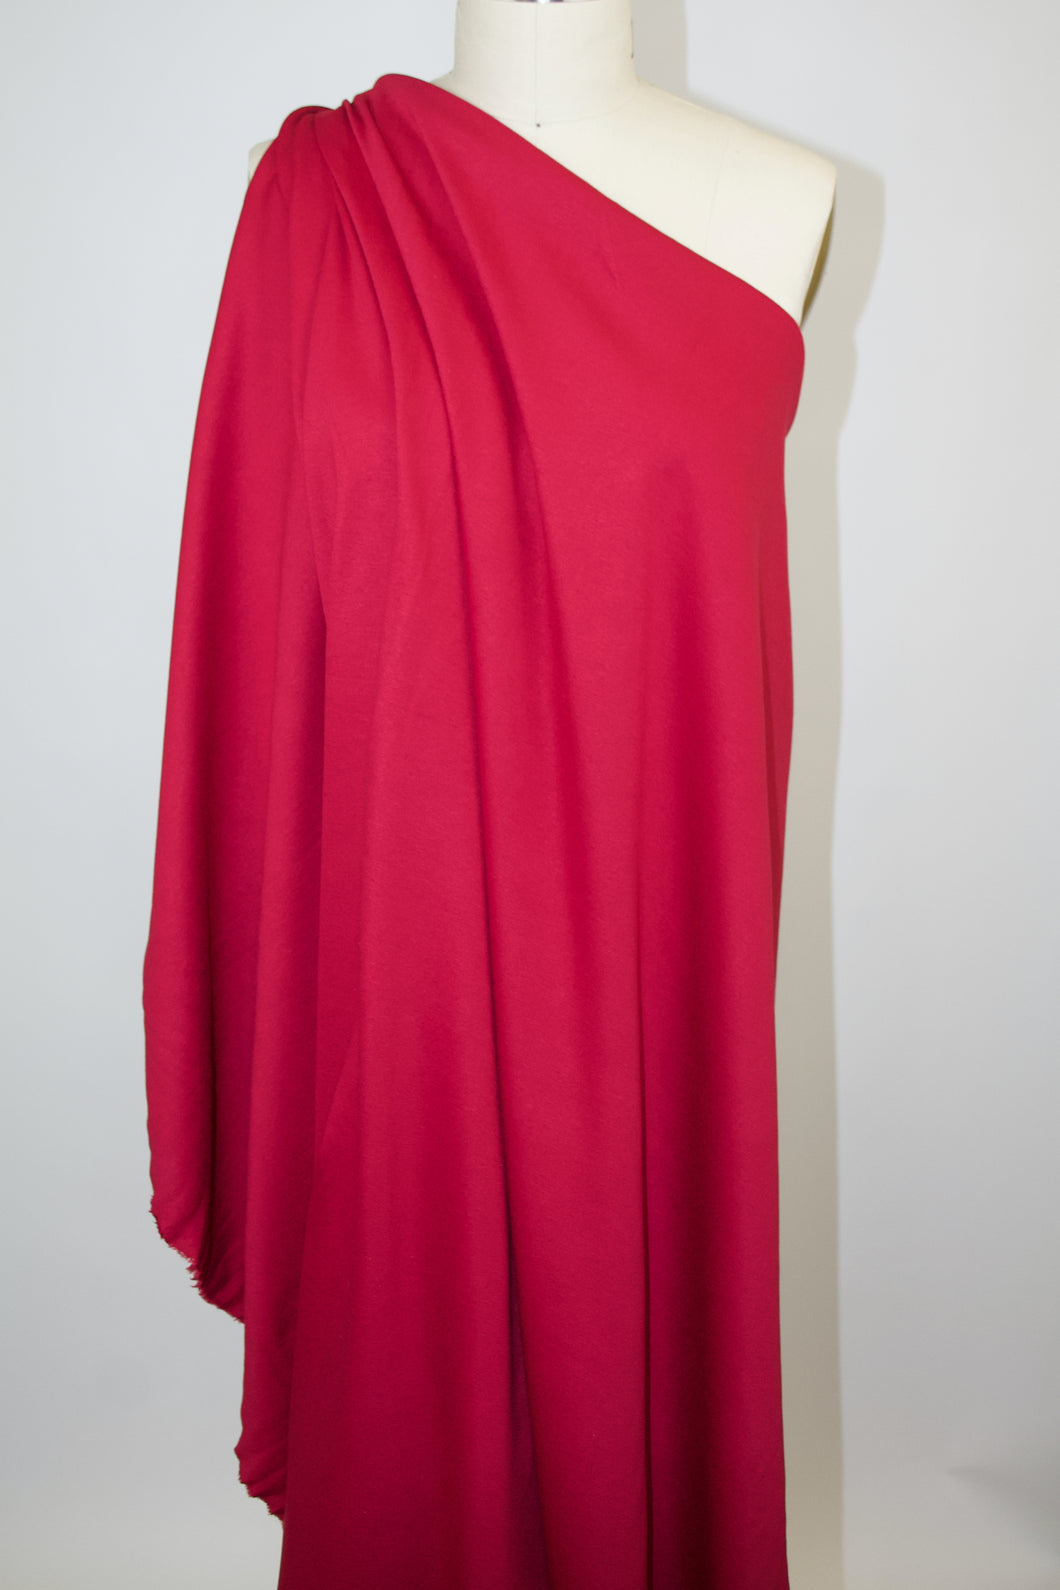 Designer Rayon Double Knit - Jazzy Red